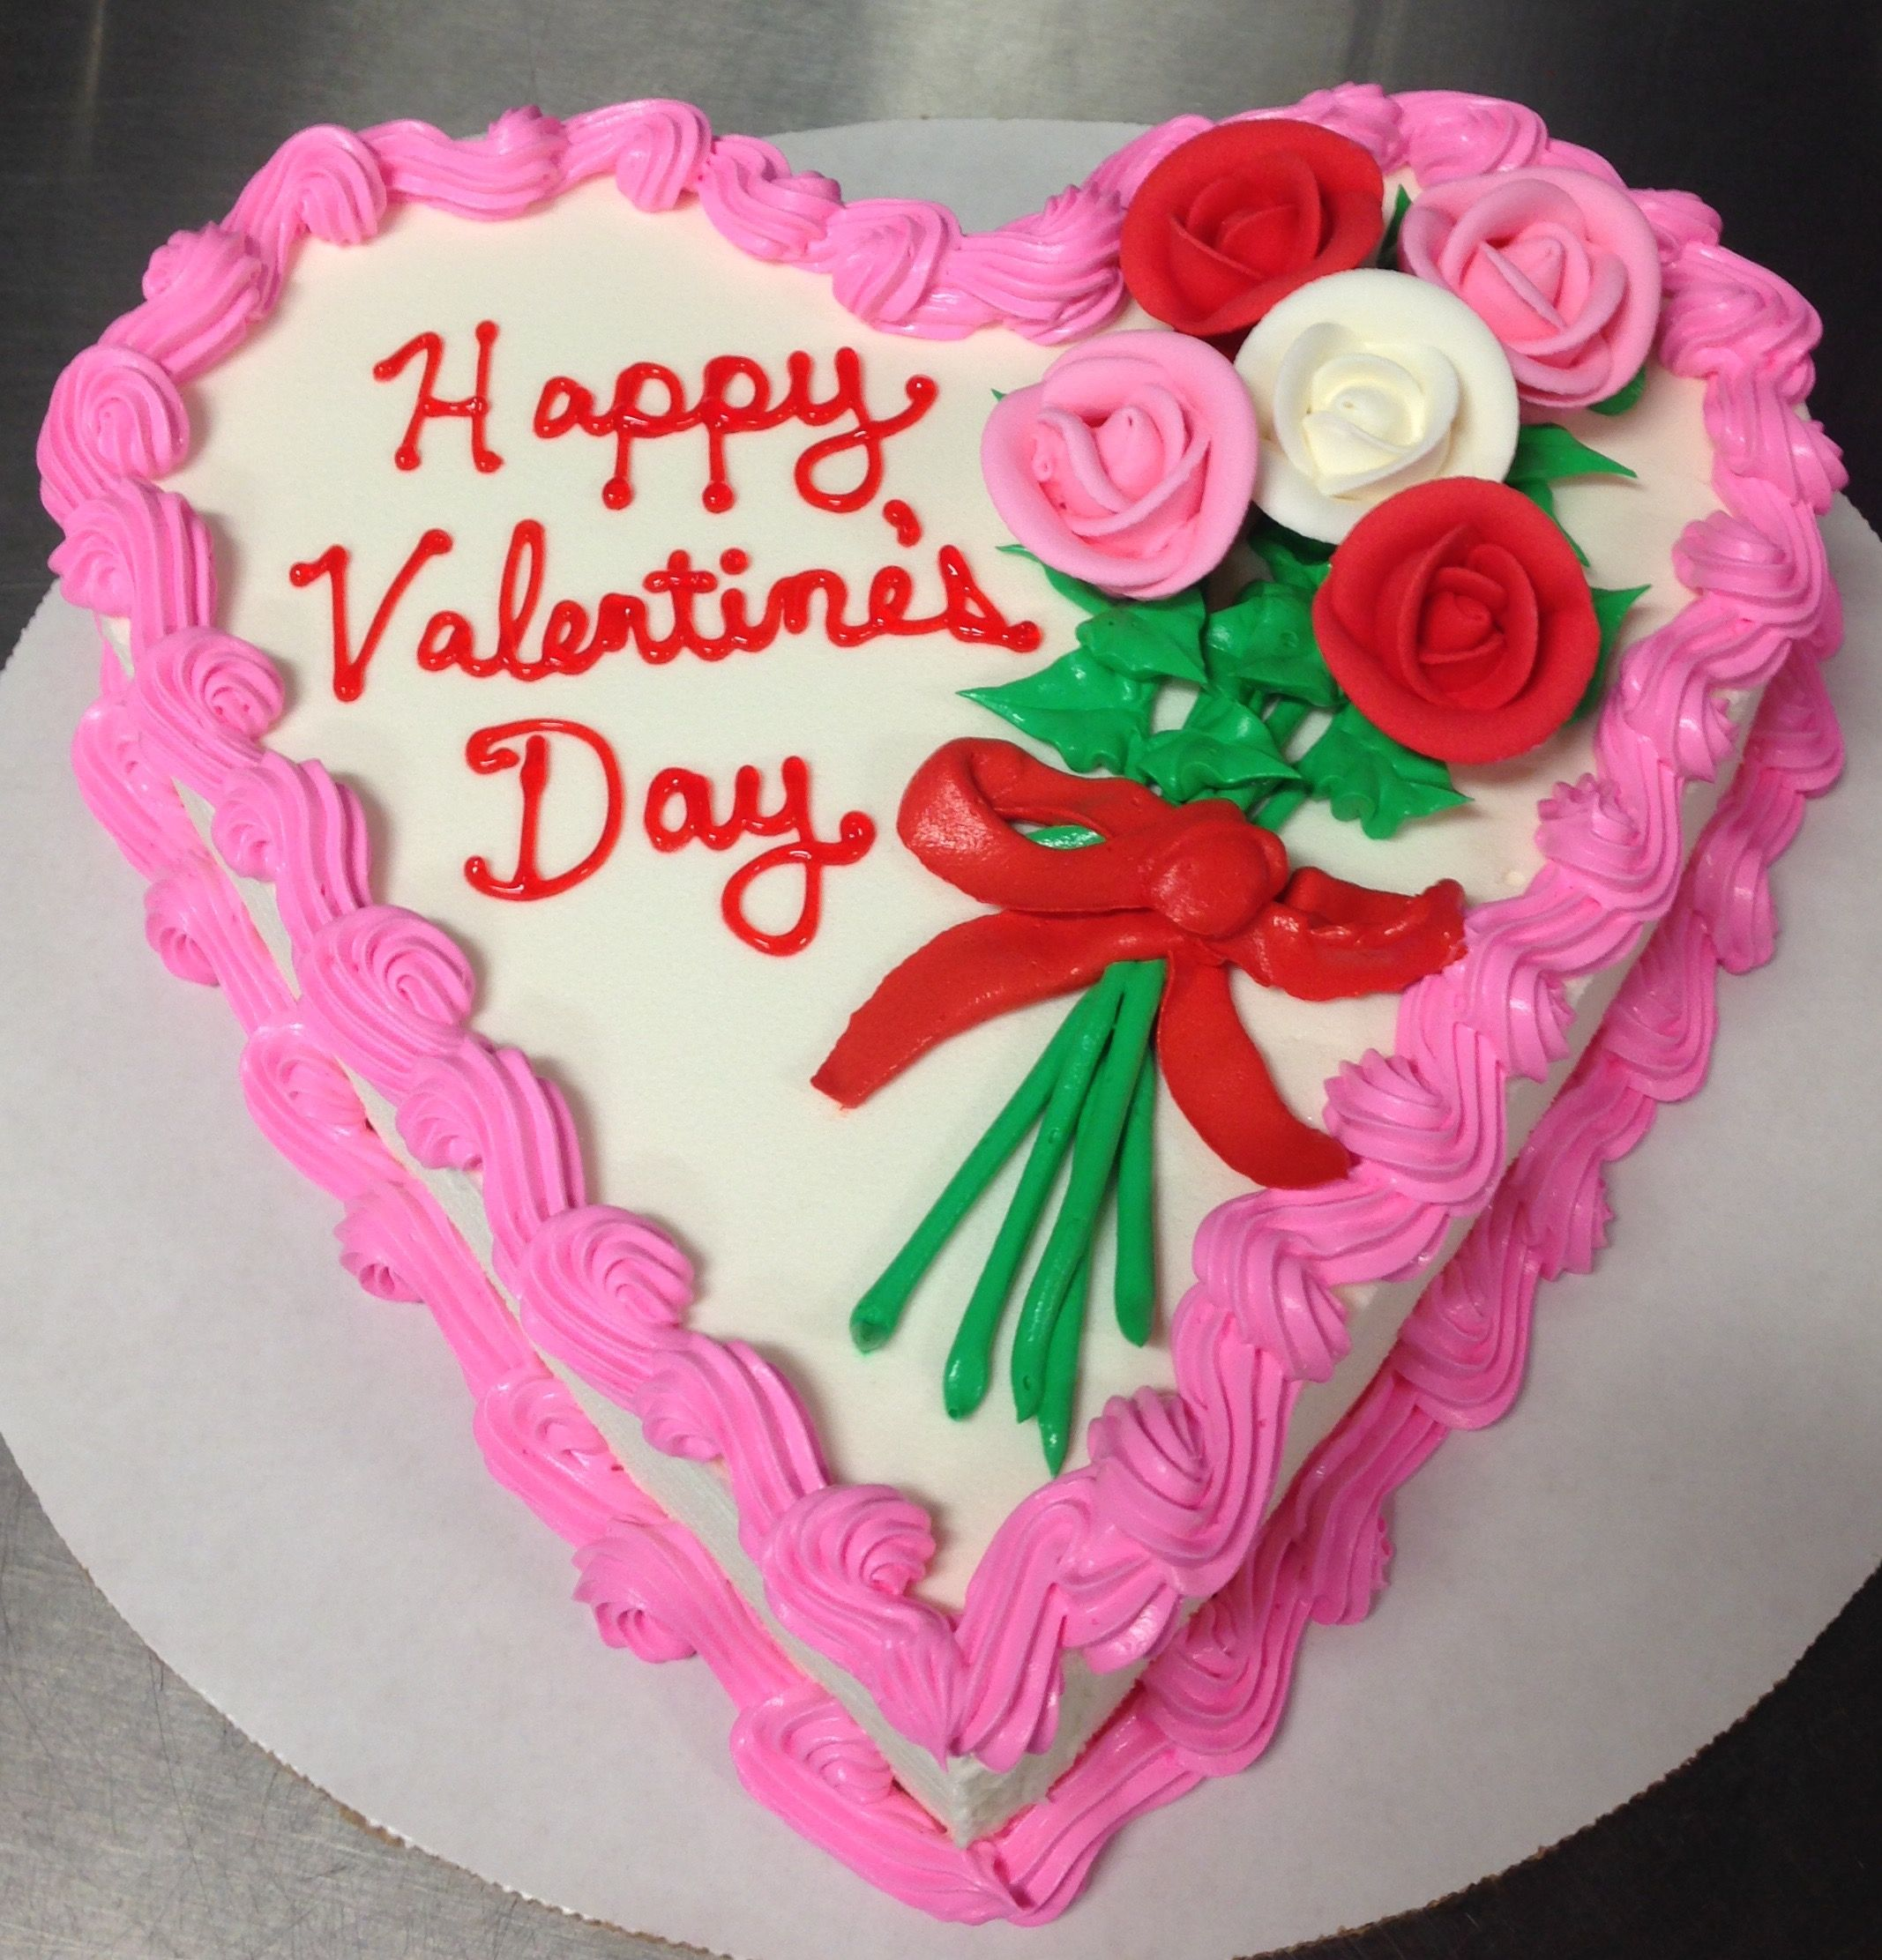 Valentine's Day DQ Heart Ice Cream Cake With Bouquet Of